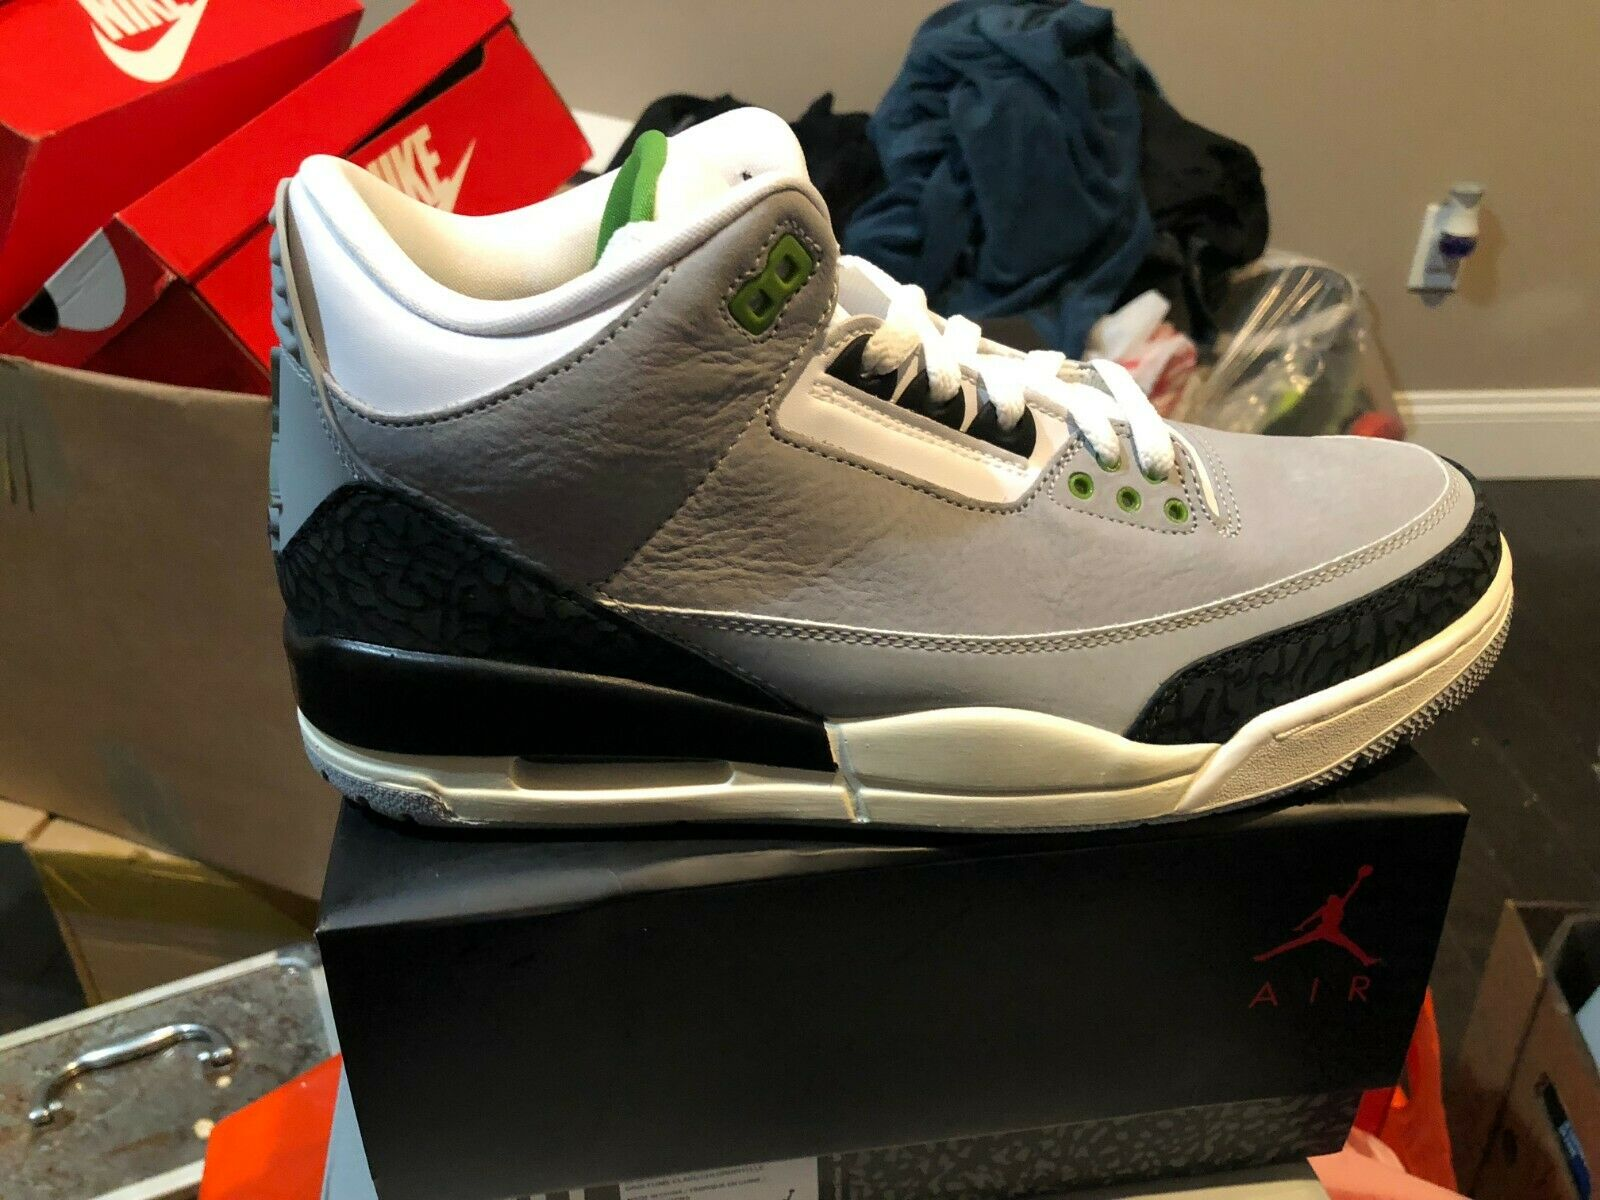 NIKE AIR JORDAN RETRO 3 BNIB GREY GREEN BLK WHITE SIZE 10.5 136064 006